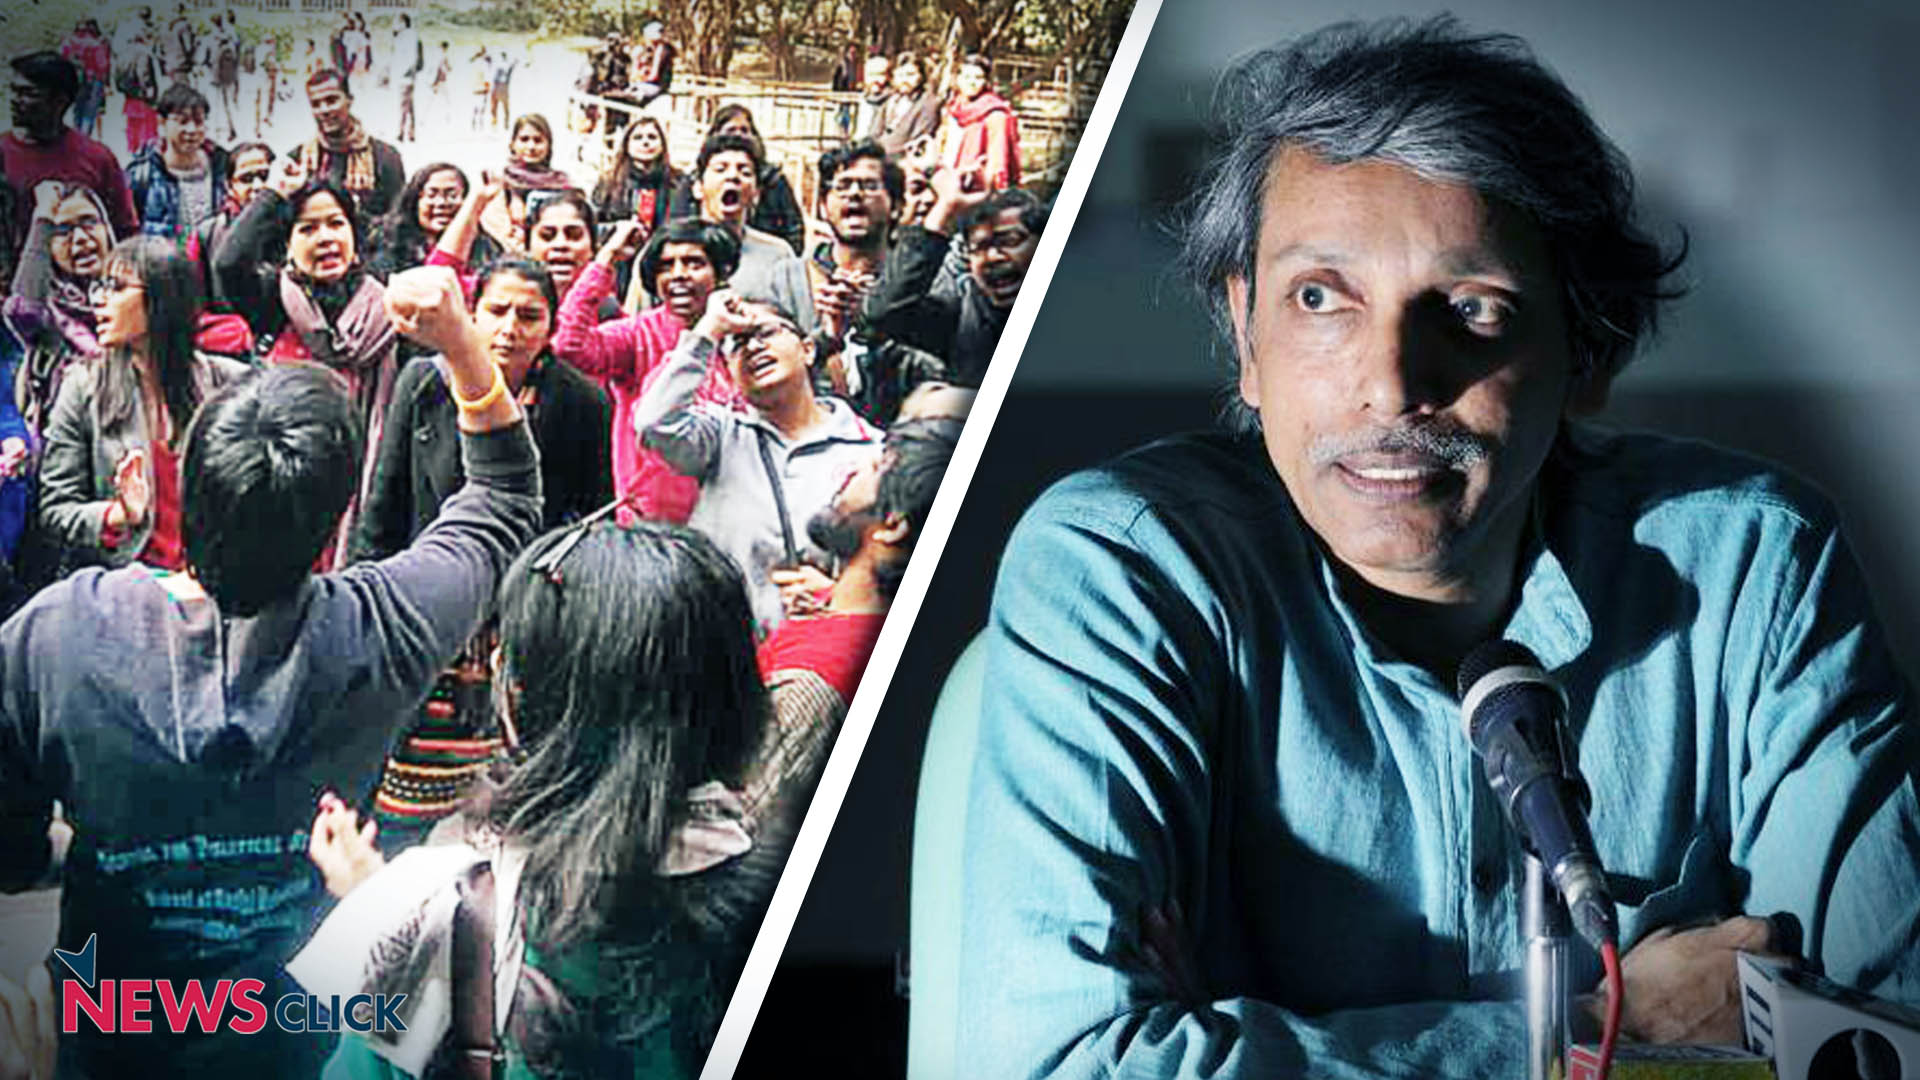 FIRs registered against JNU students for wrongful restraint